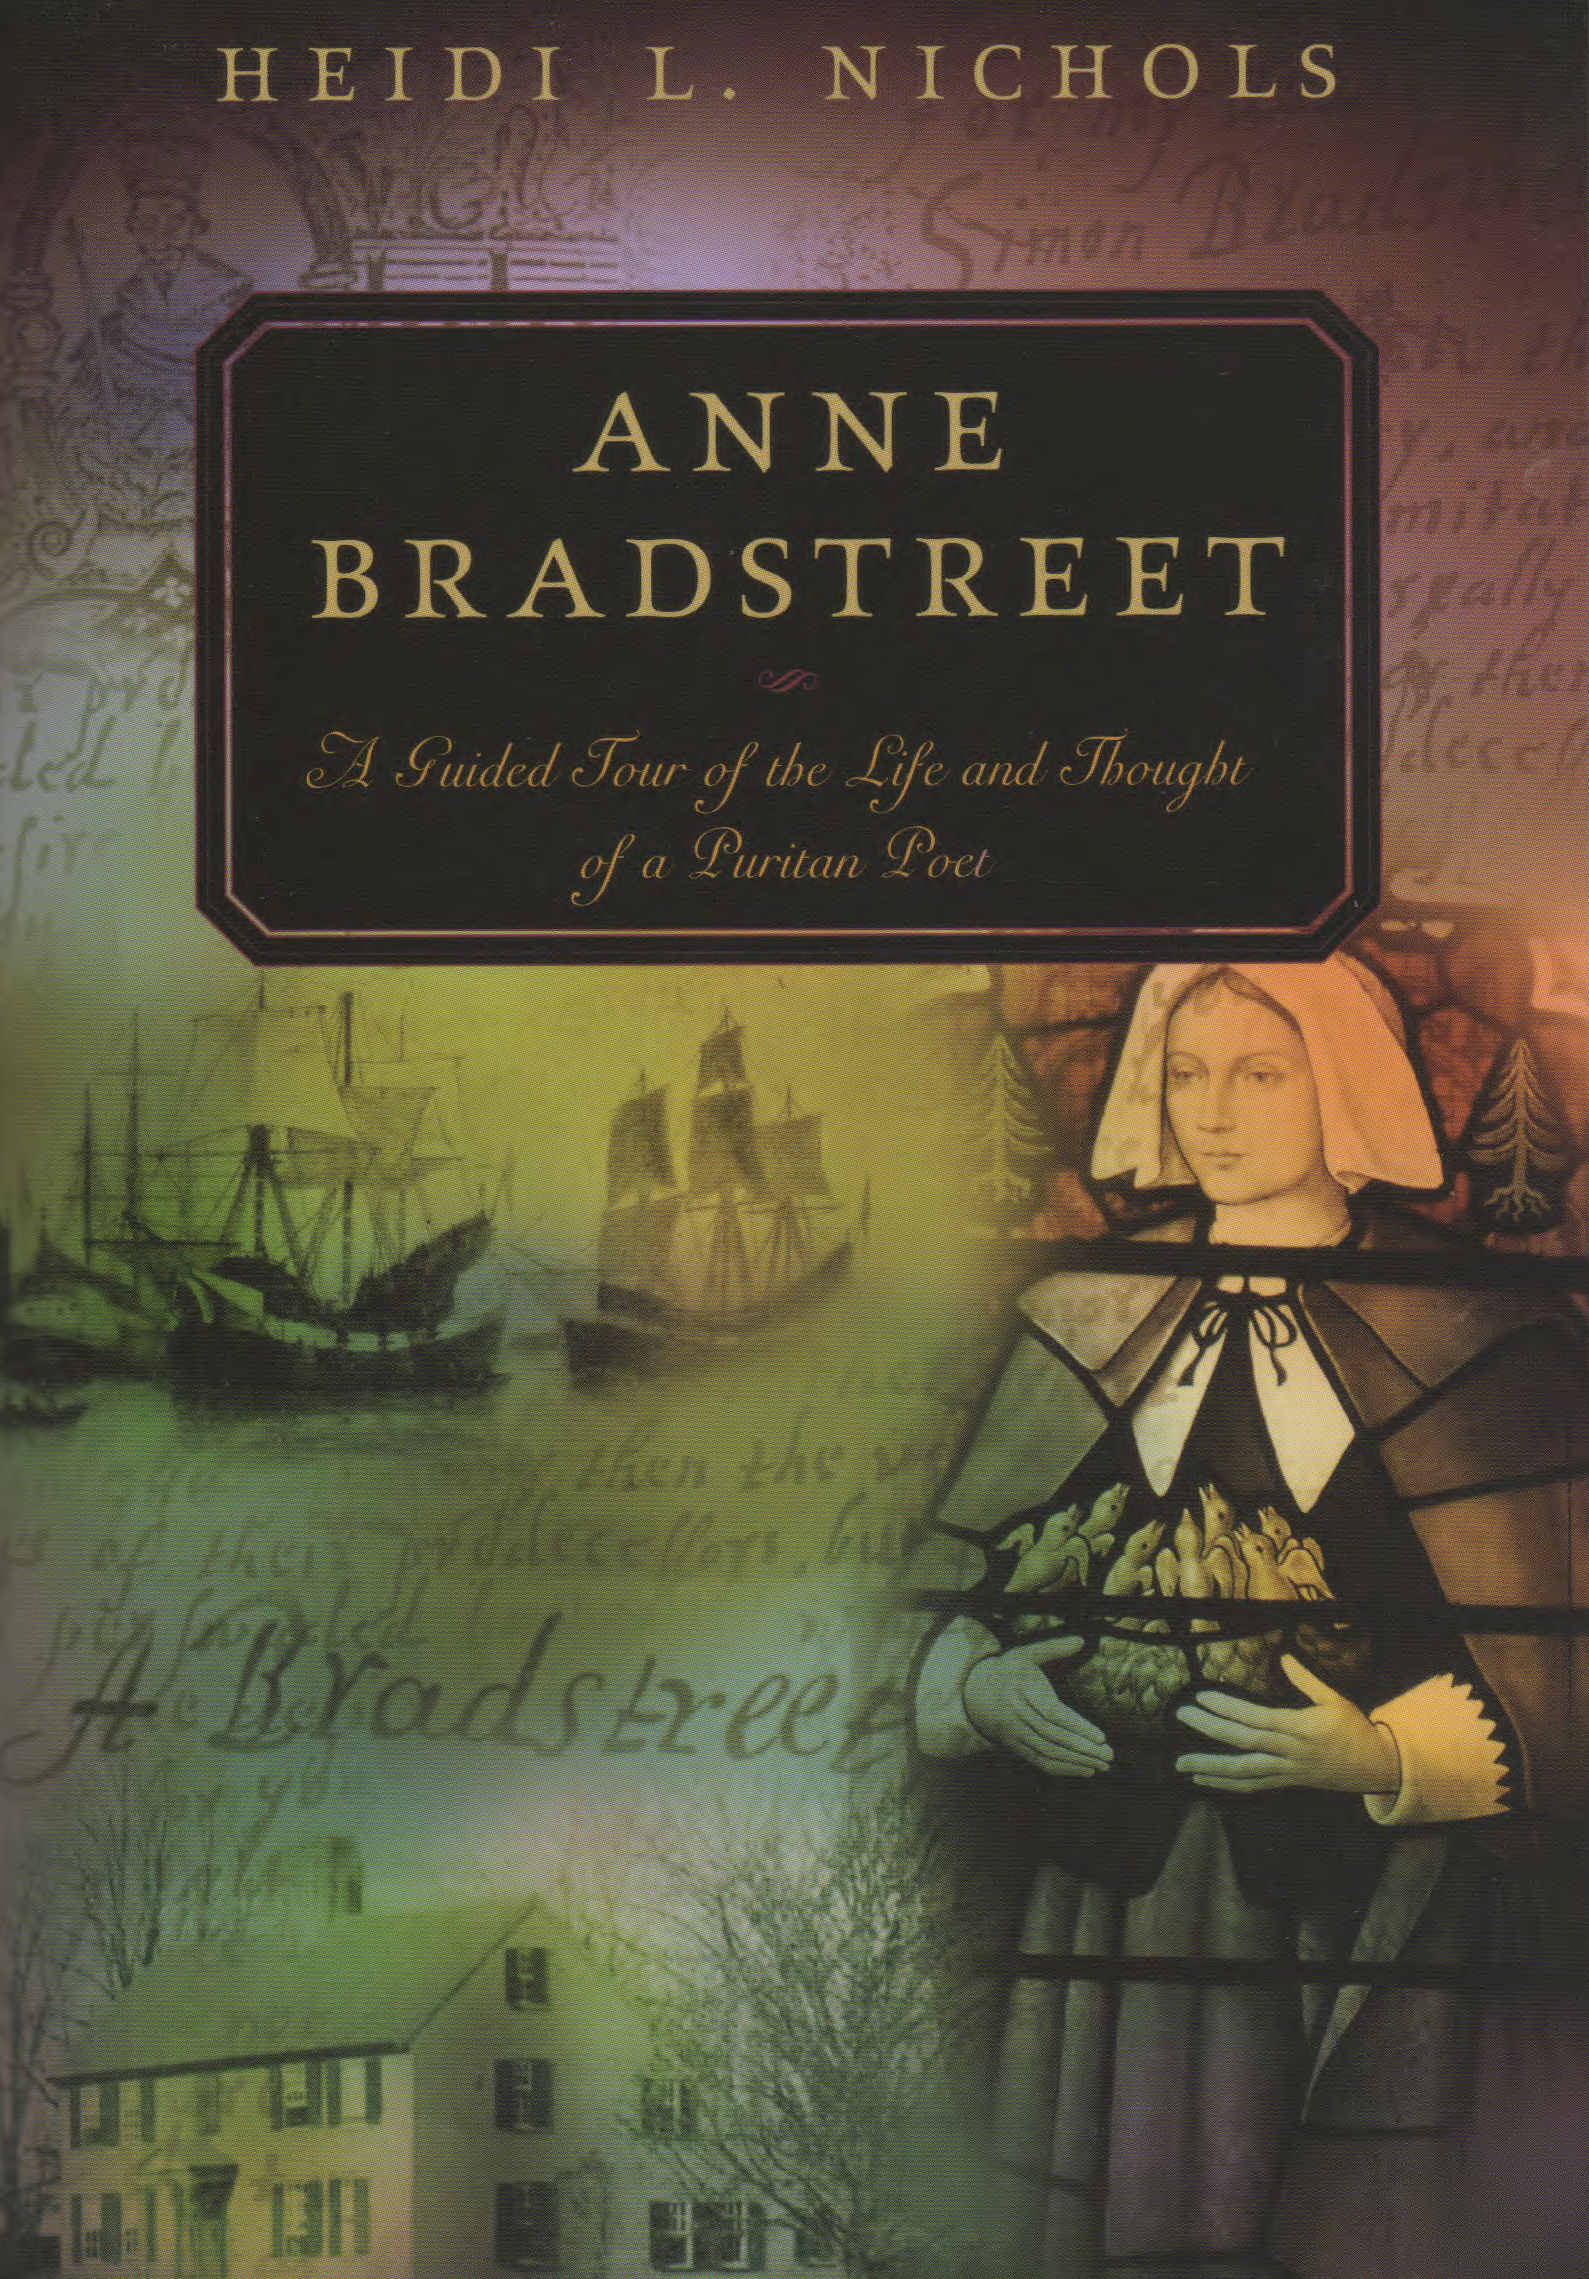 anne brandstreet and female identity Anne bradstreet was a fascinating character during an equally fascinating period of history, the puritan era in colonial america she was born in england in 1612, in a cultured and well-to-do family.